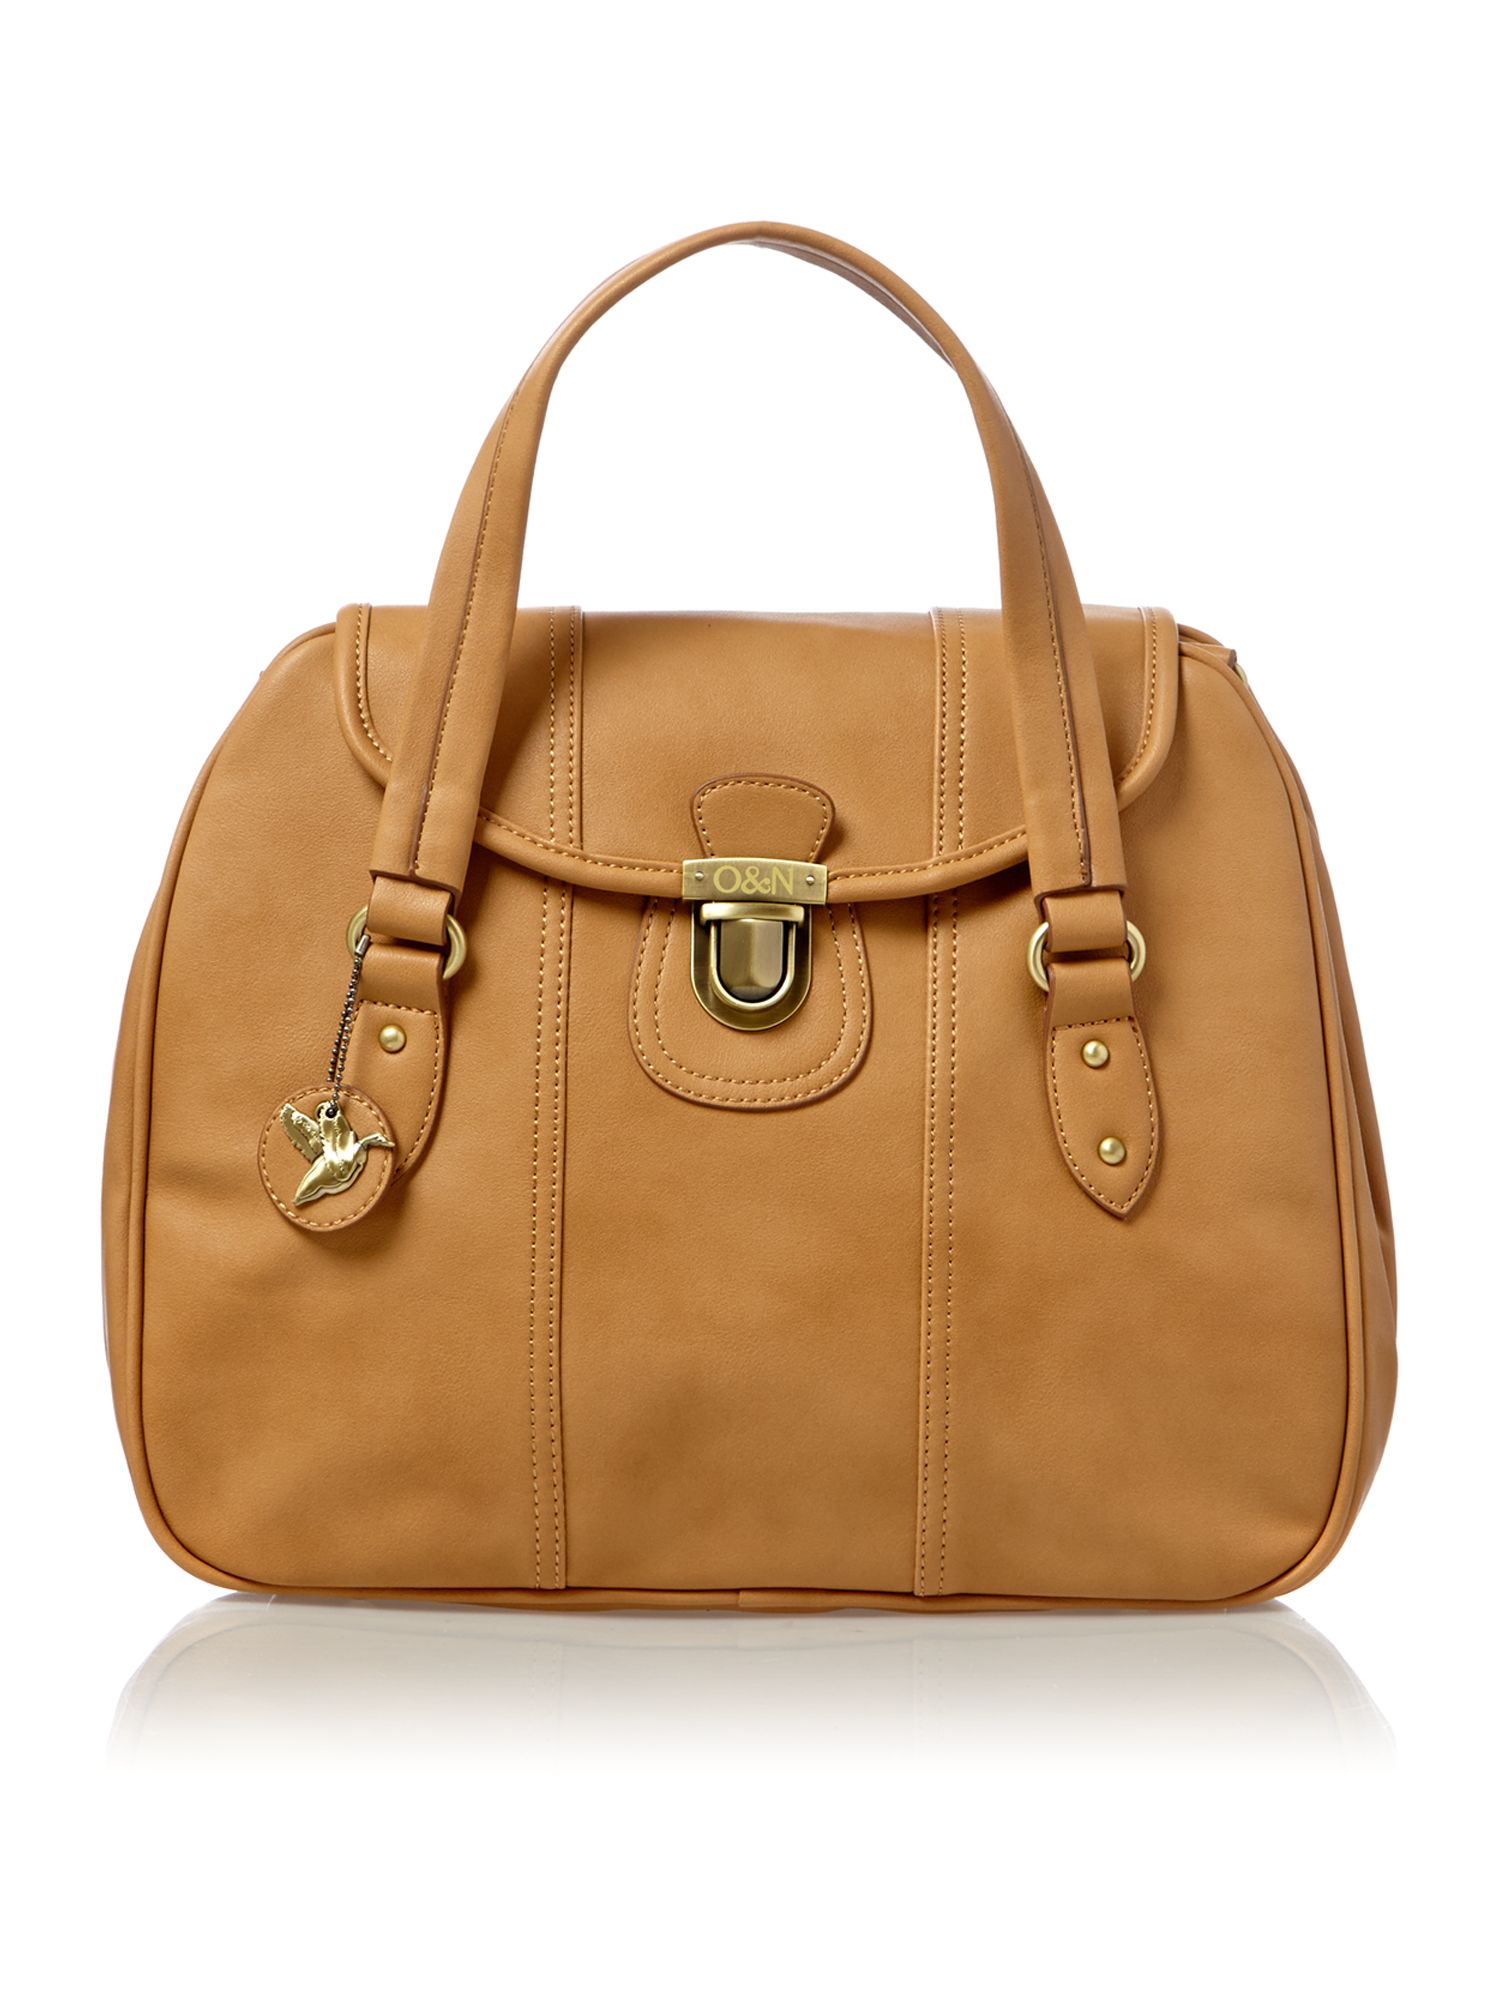 Cristina tan large satchel bag